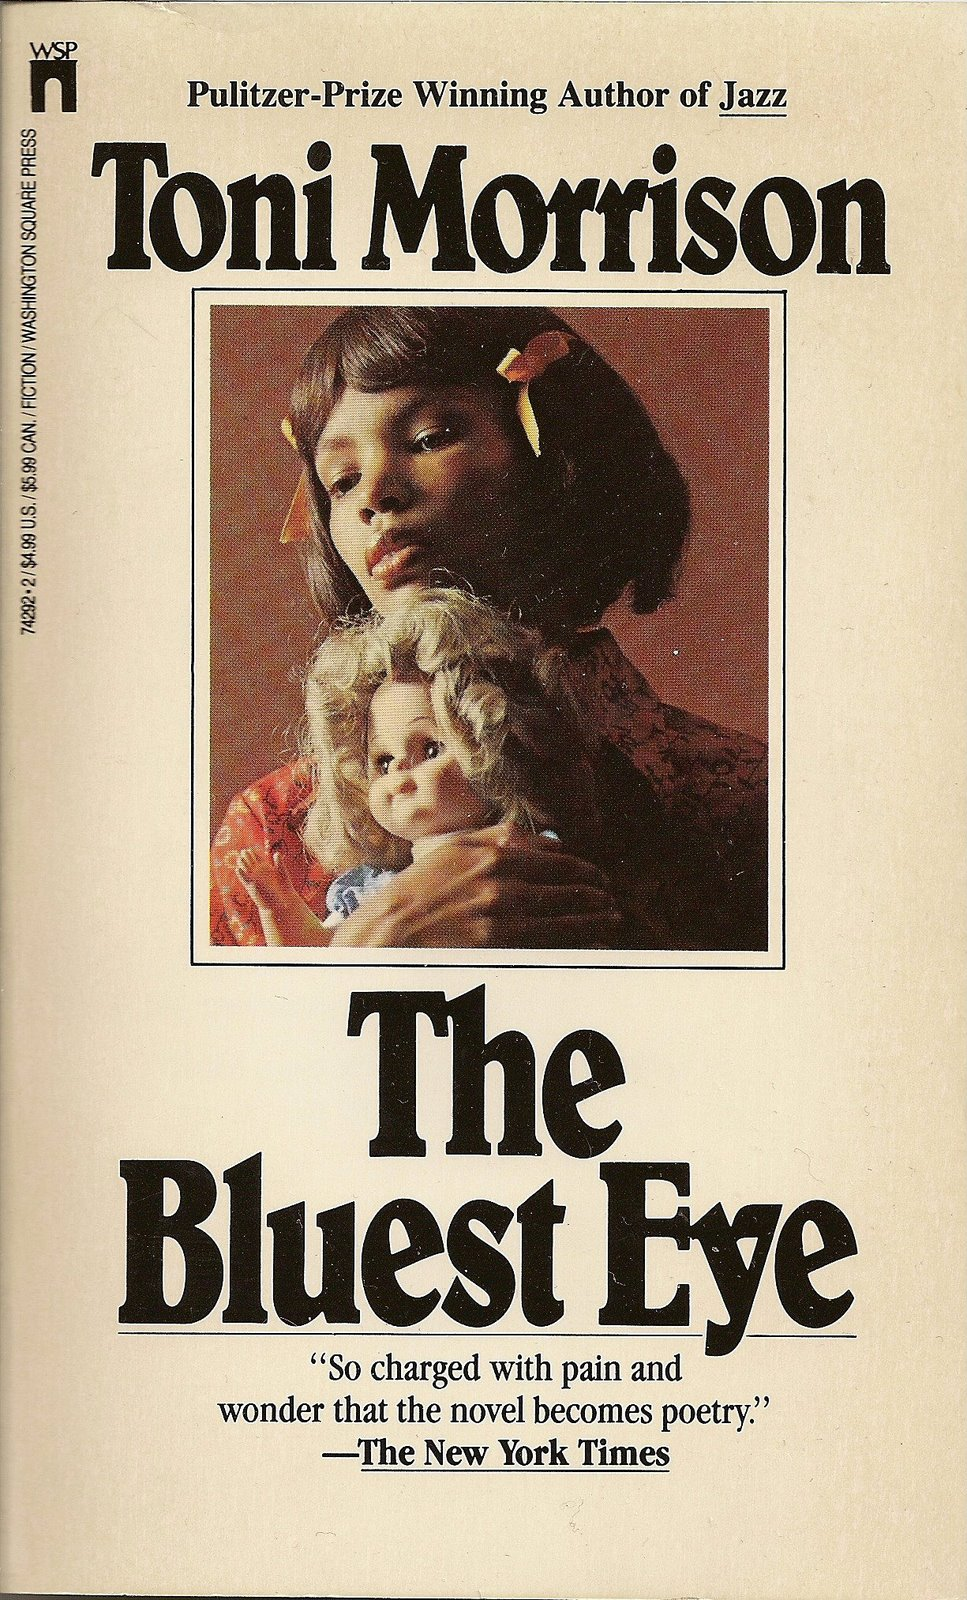 bluest eye essay us history essay topics regents vejledning til at  simulat ed ing americans engl and malas b william the bluest eye by toni morrison